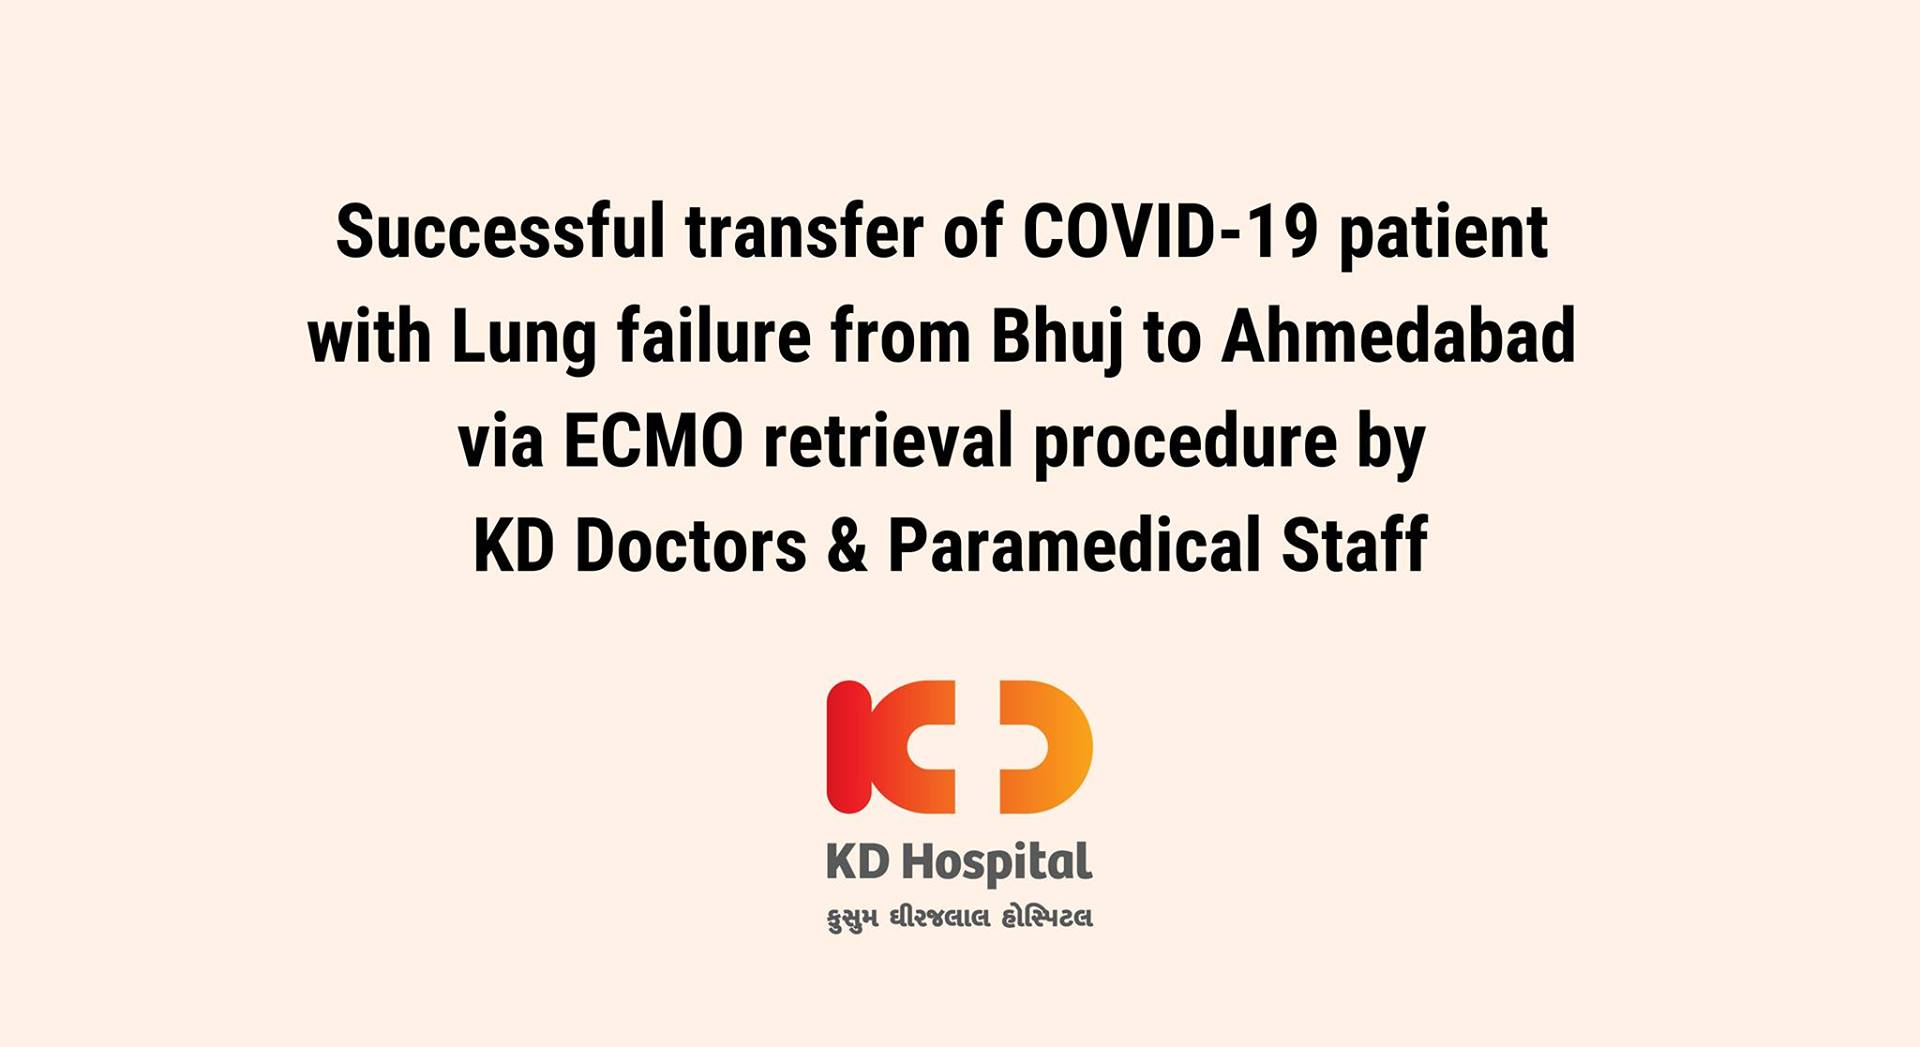 Here's yet another exceptional case of medical intervention undertaken by our team of doctors and paramedical staff.  Our team reached in time, 300 km away in Bhuj to rescue a 28-year-old patient suffering from Lungs failure due to a Covid-19 infection. It was a relief for everyone after successfully providing him with ECMO retrieval support and he was brought to KD Hospital, Ahmedabad.  We are proud of our Doctors & our Staff and promise to always spread Hope, Health & Happiness.  #KDHospital #Care #ECMO #PatientCare #PatientFirst #Compassion #Safety #PatientSafety #SafetyComesFirst #SafetyFirst #SafetyMeasures #Diagnosis #Therapeutics #Awareness #wellness #goodhealth #Nursing #NABHHospital #QualityCare #hospitals #doctors #healthcare #medical #health #physicians #surgery #surgeon #Ahmedabad #Gujarat #India